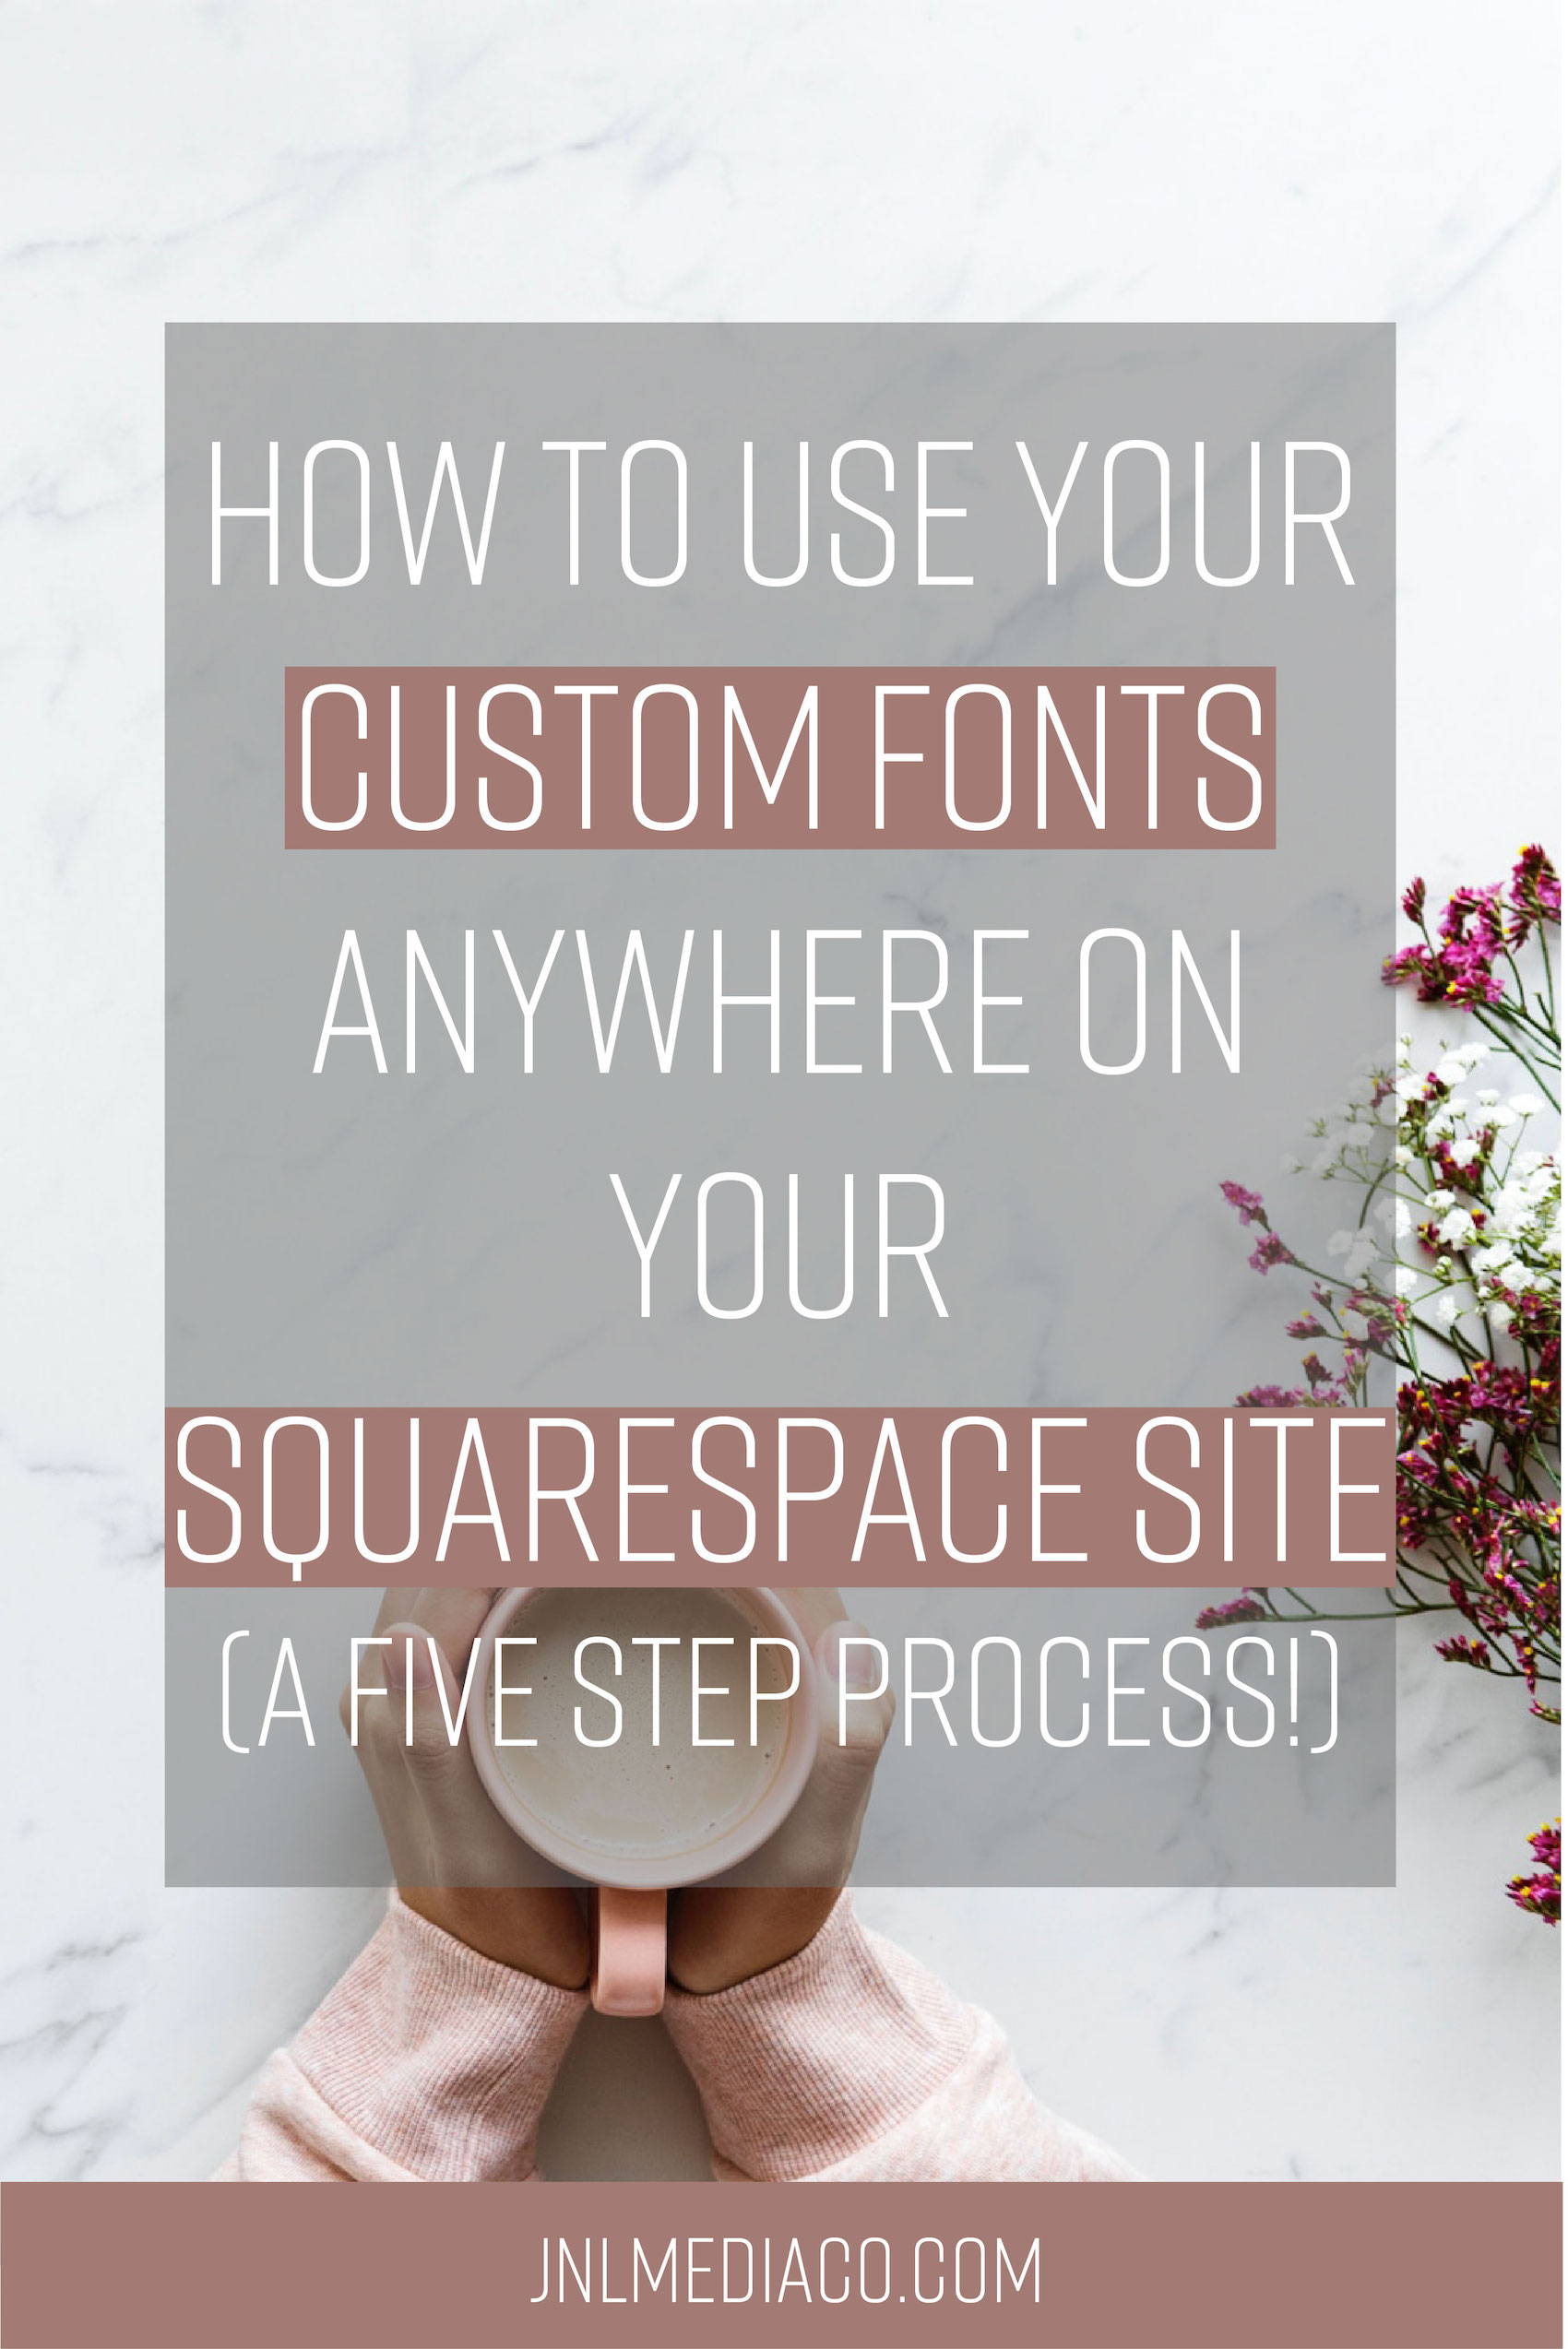 Learn how to use your custom fonts anywhere on your squarespace site in five steps.